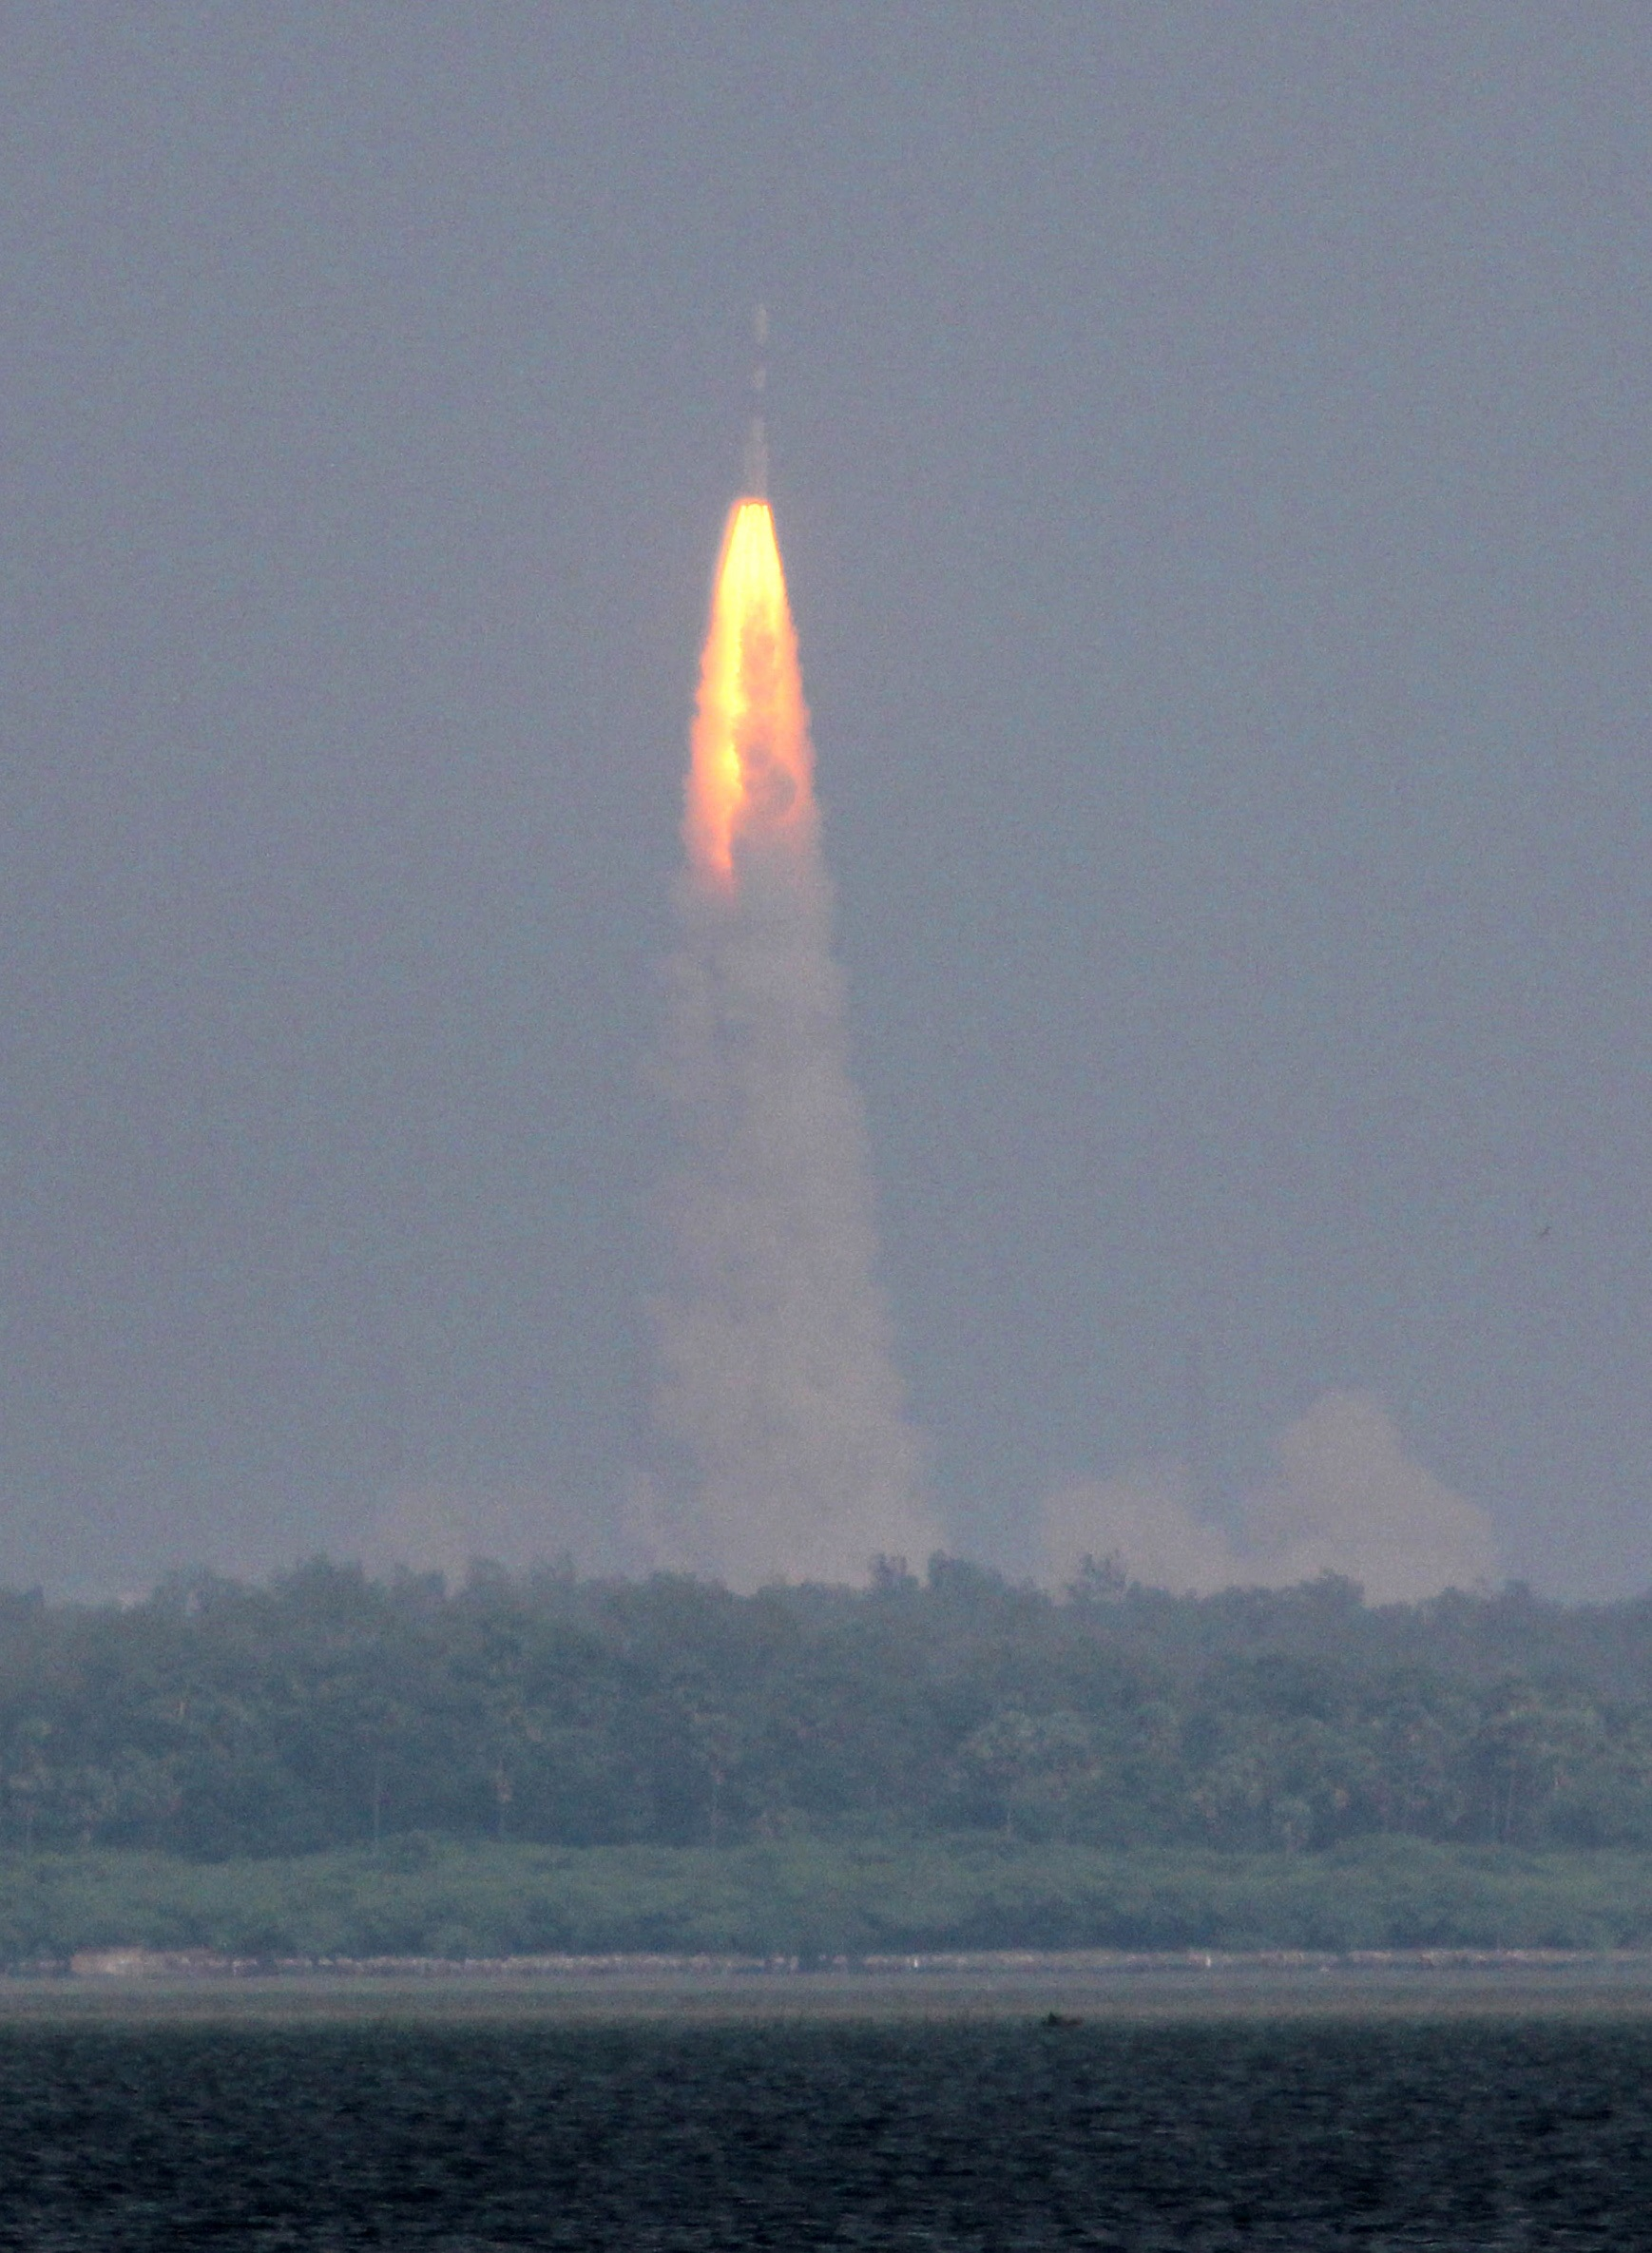 The Polar Satellite Launch Vehicle rocket lifts off carrying India's Mars spacecraft from the east-coast island of Sriharikota, India, Nov. 2013.